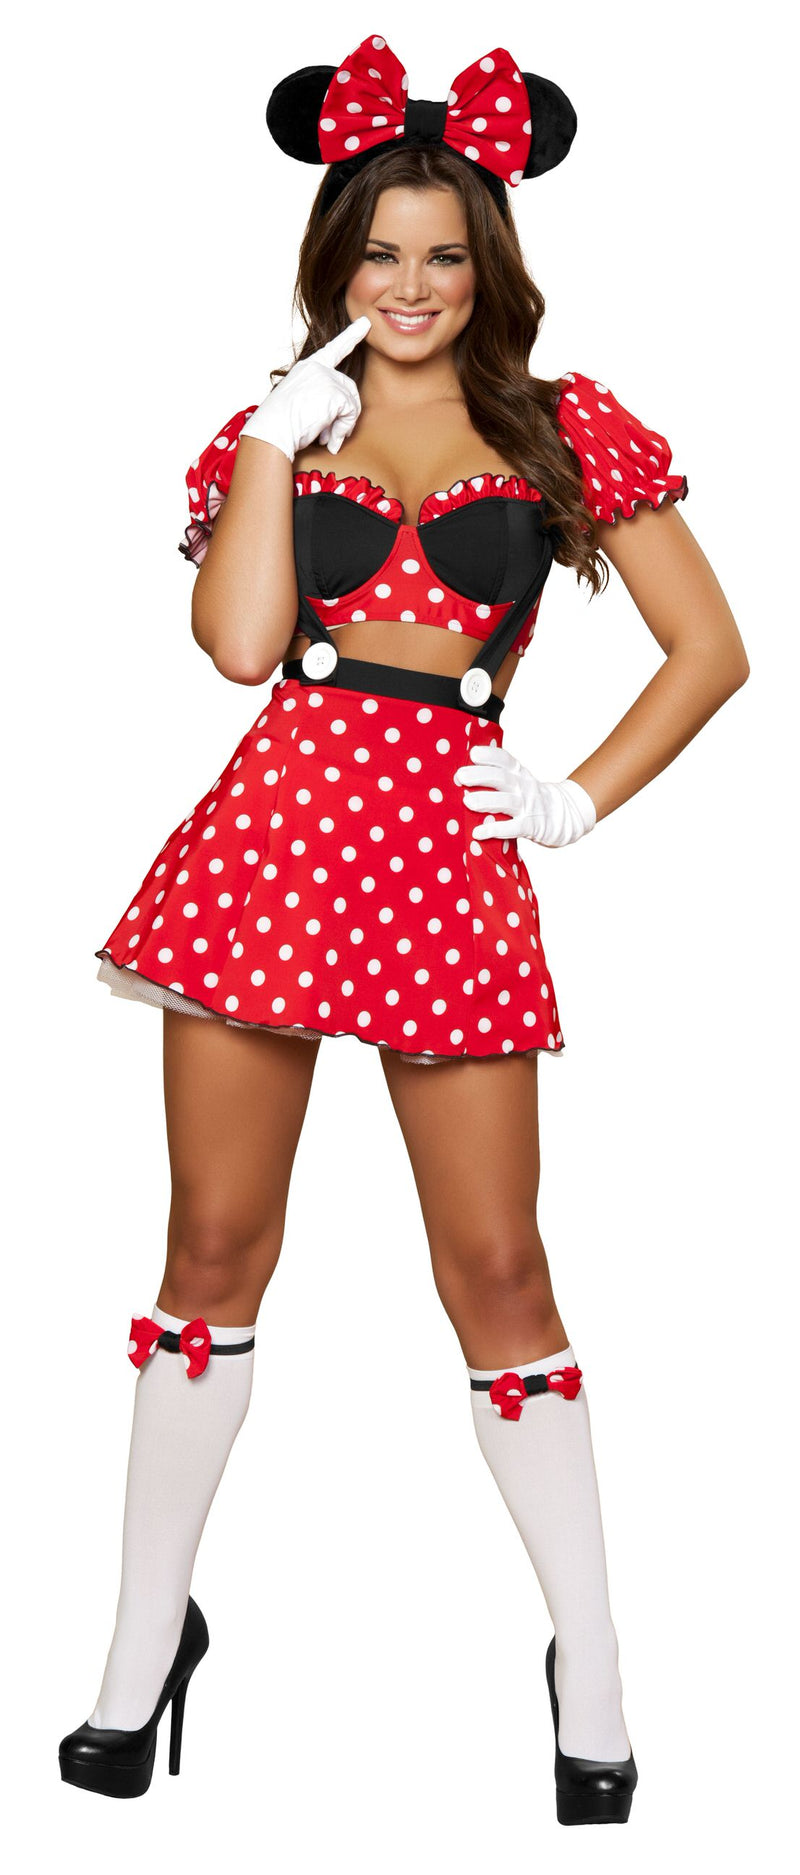 3-Piece-Miss-Mouse-Crop-Top-&-Skirt-w/-Ears-Headband-Party-Costume